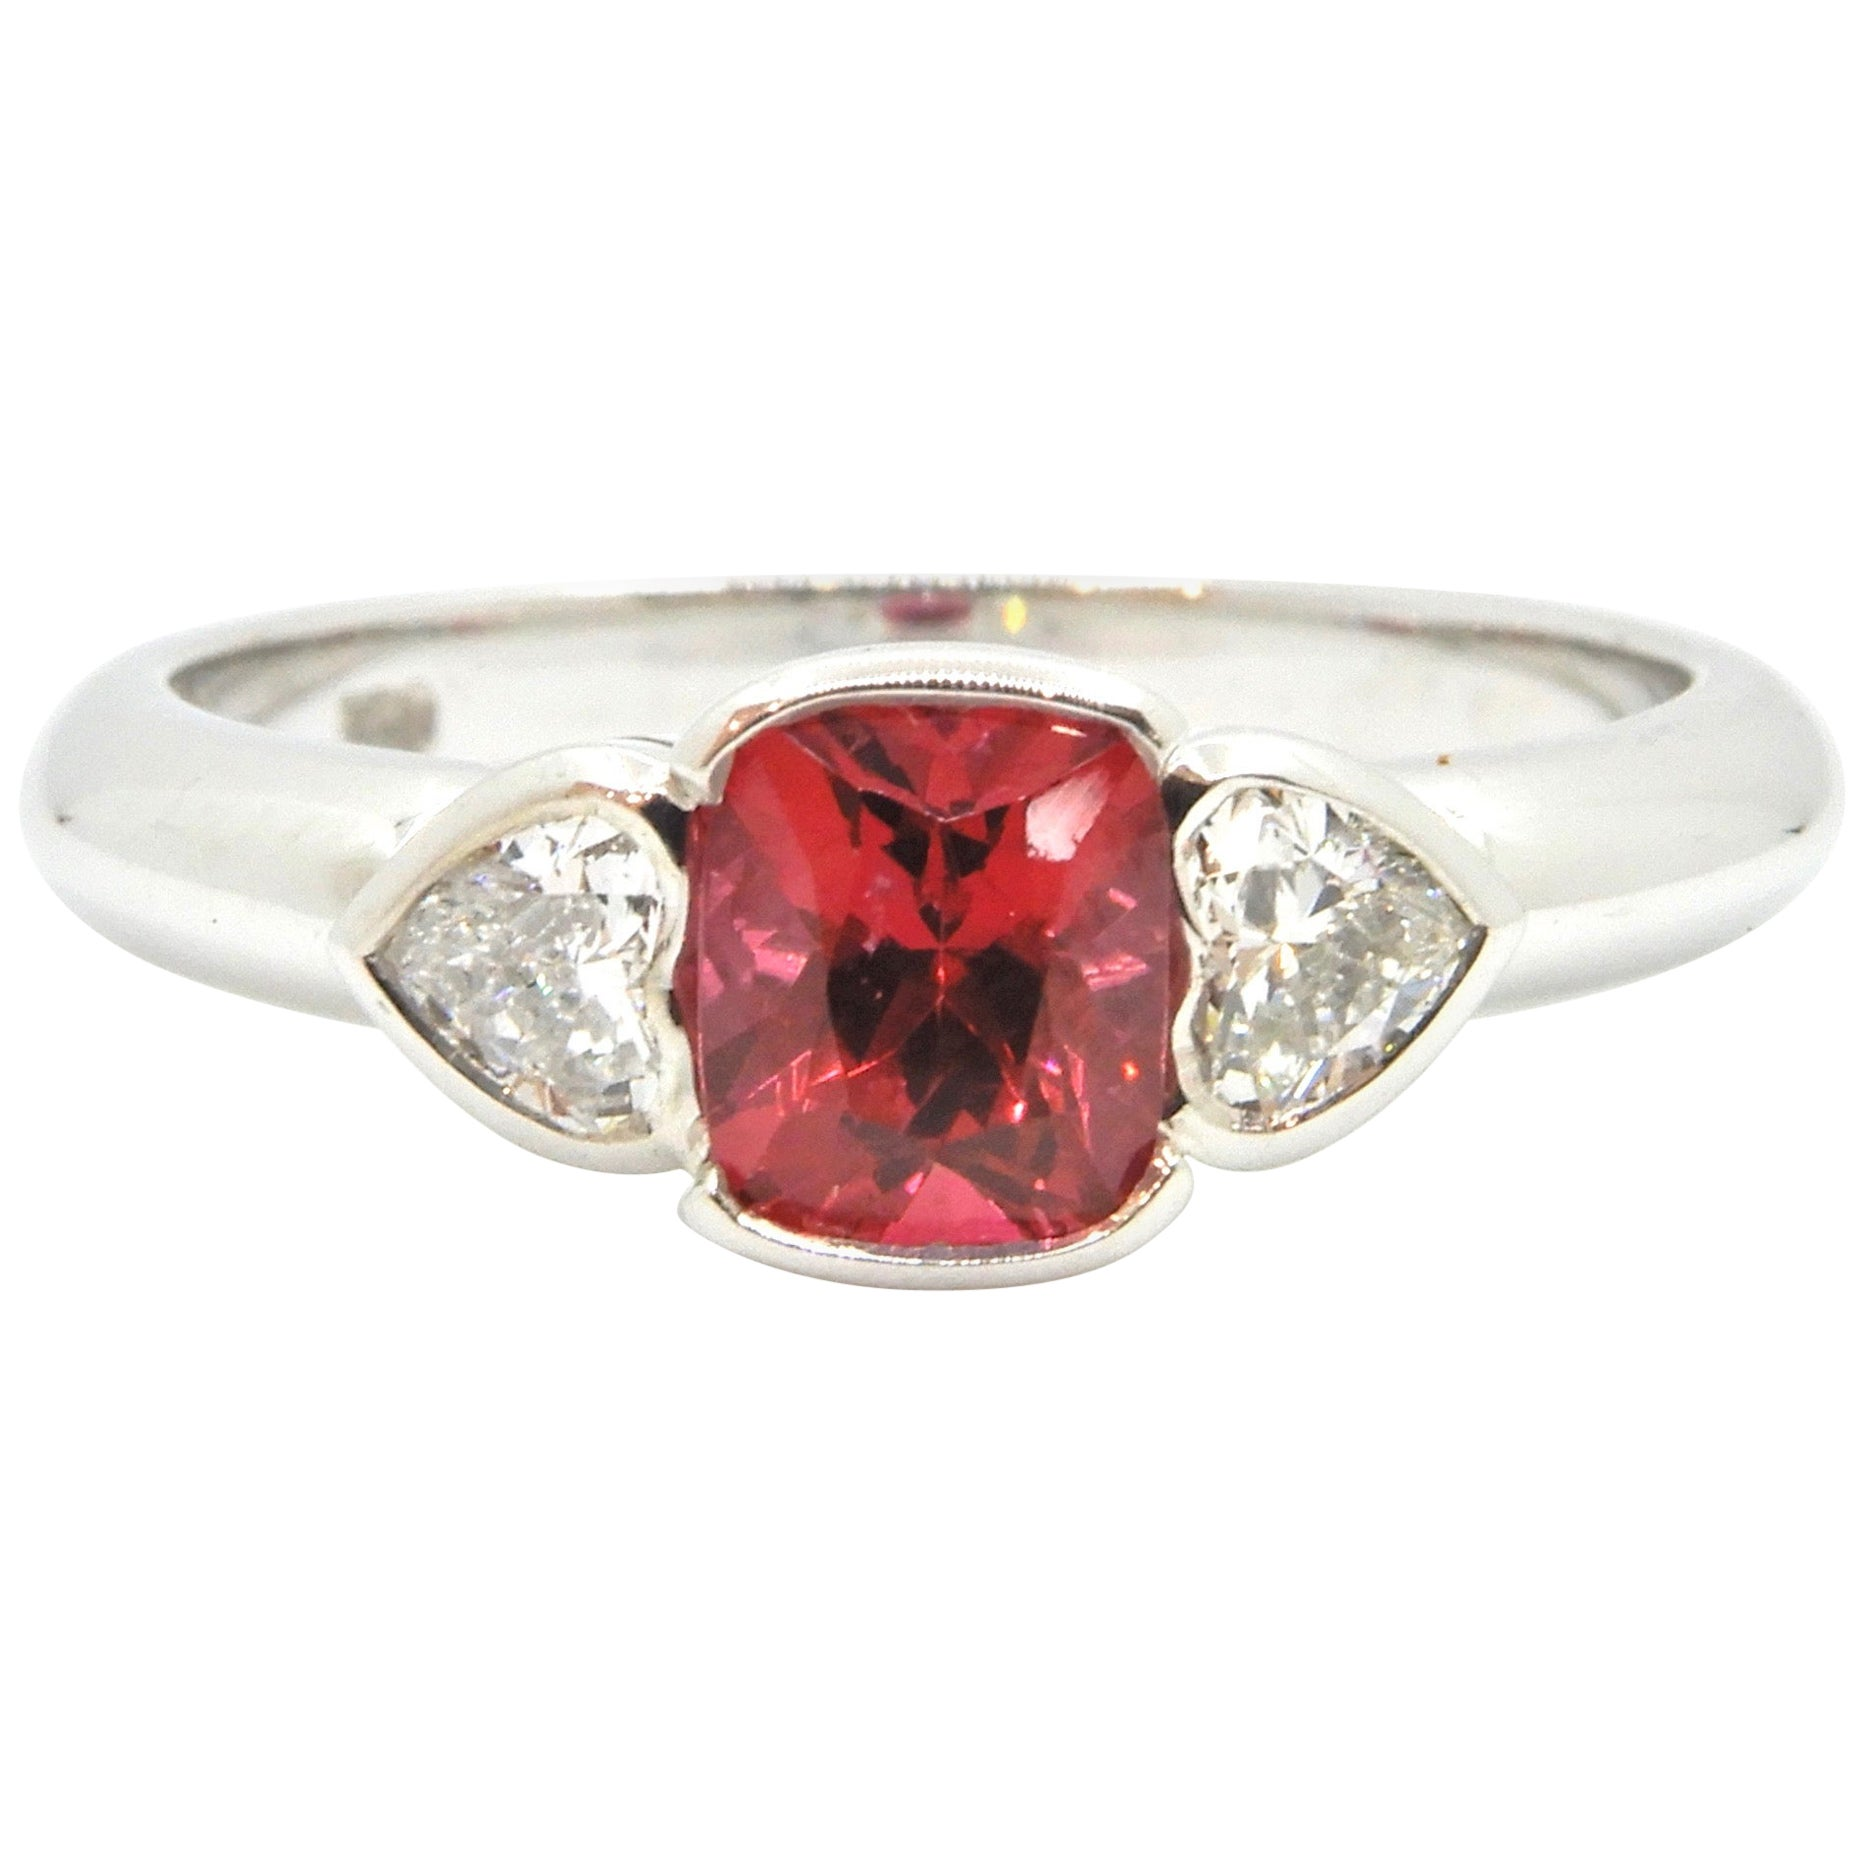 Red Spinel and Heart Cut Diamond White Gold Handmade Three-Stone Engagement Ring